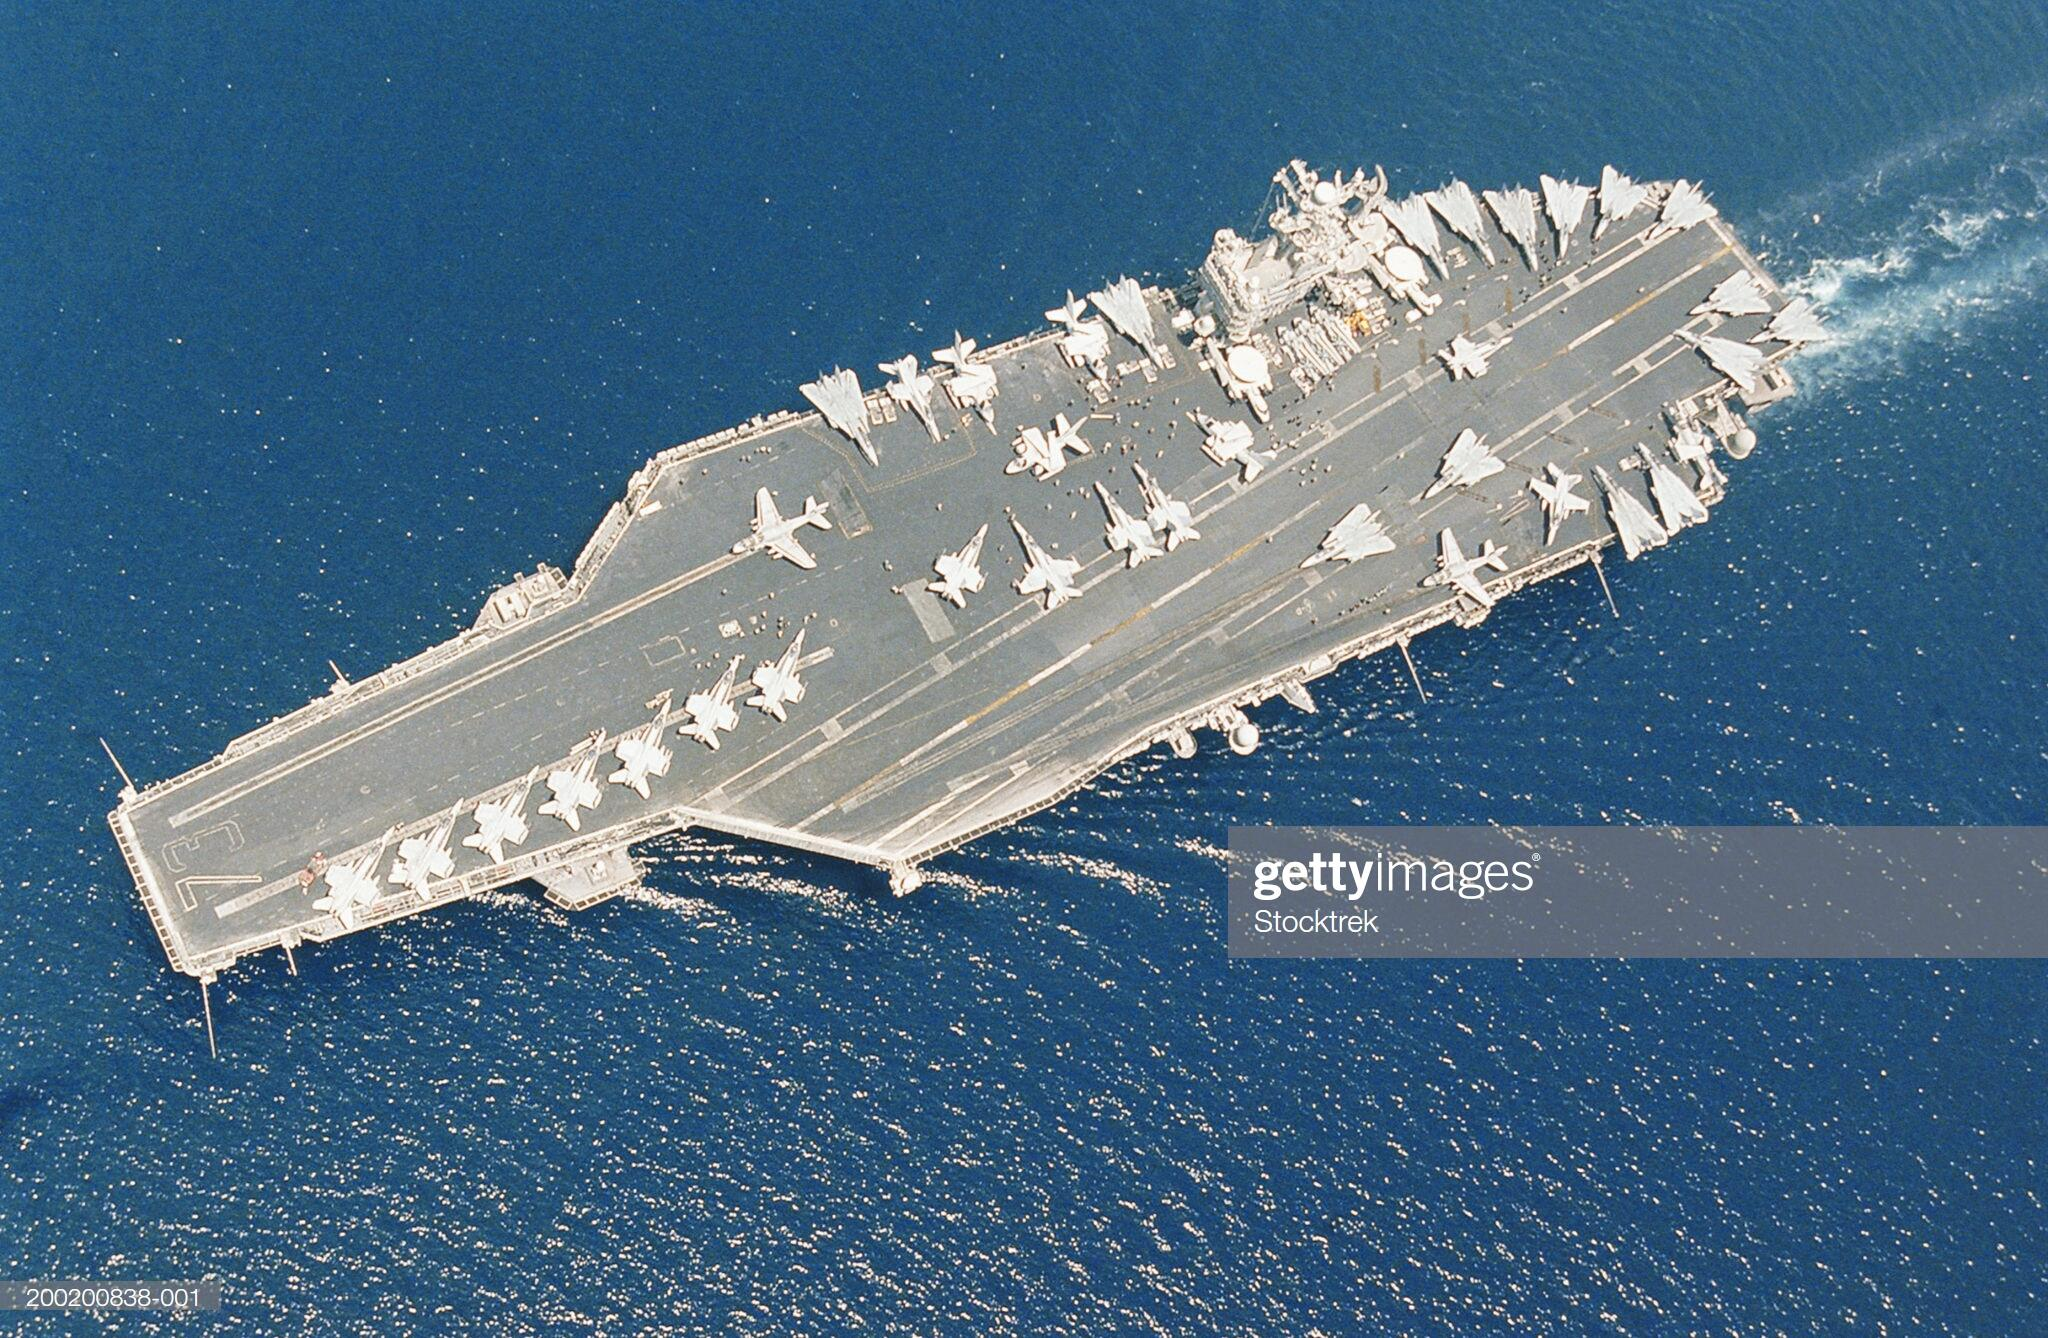 The USS Doris Miller, America's Newest Commissioned Aircraft Carrier.